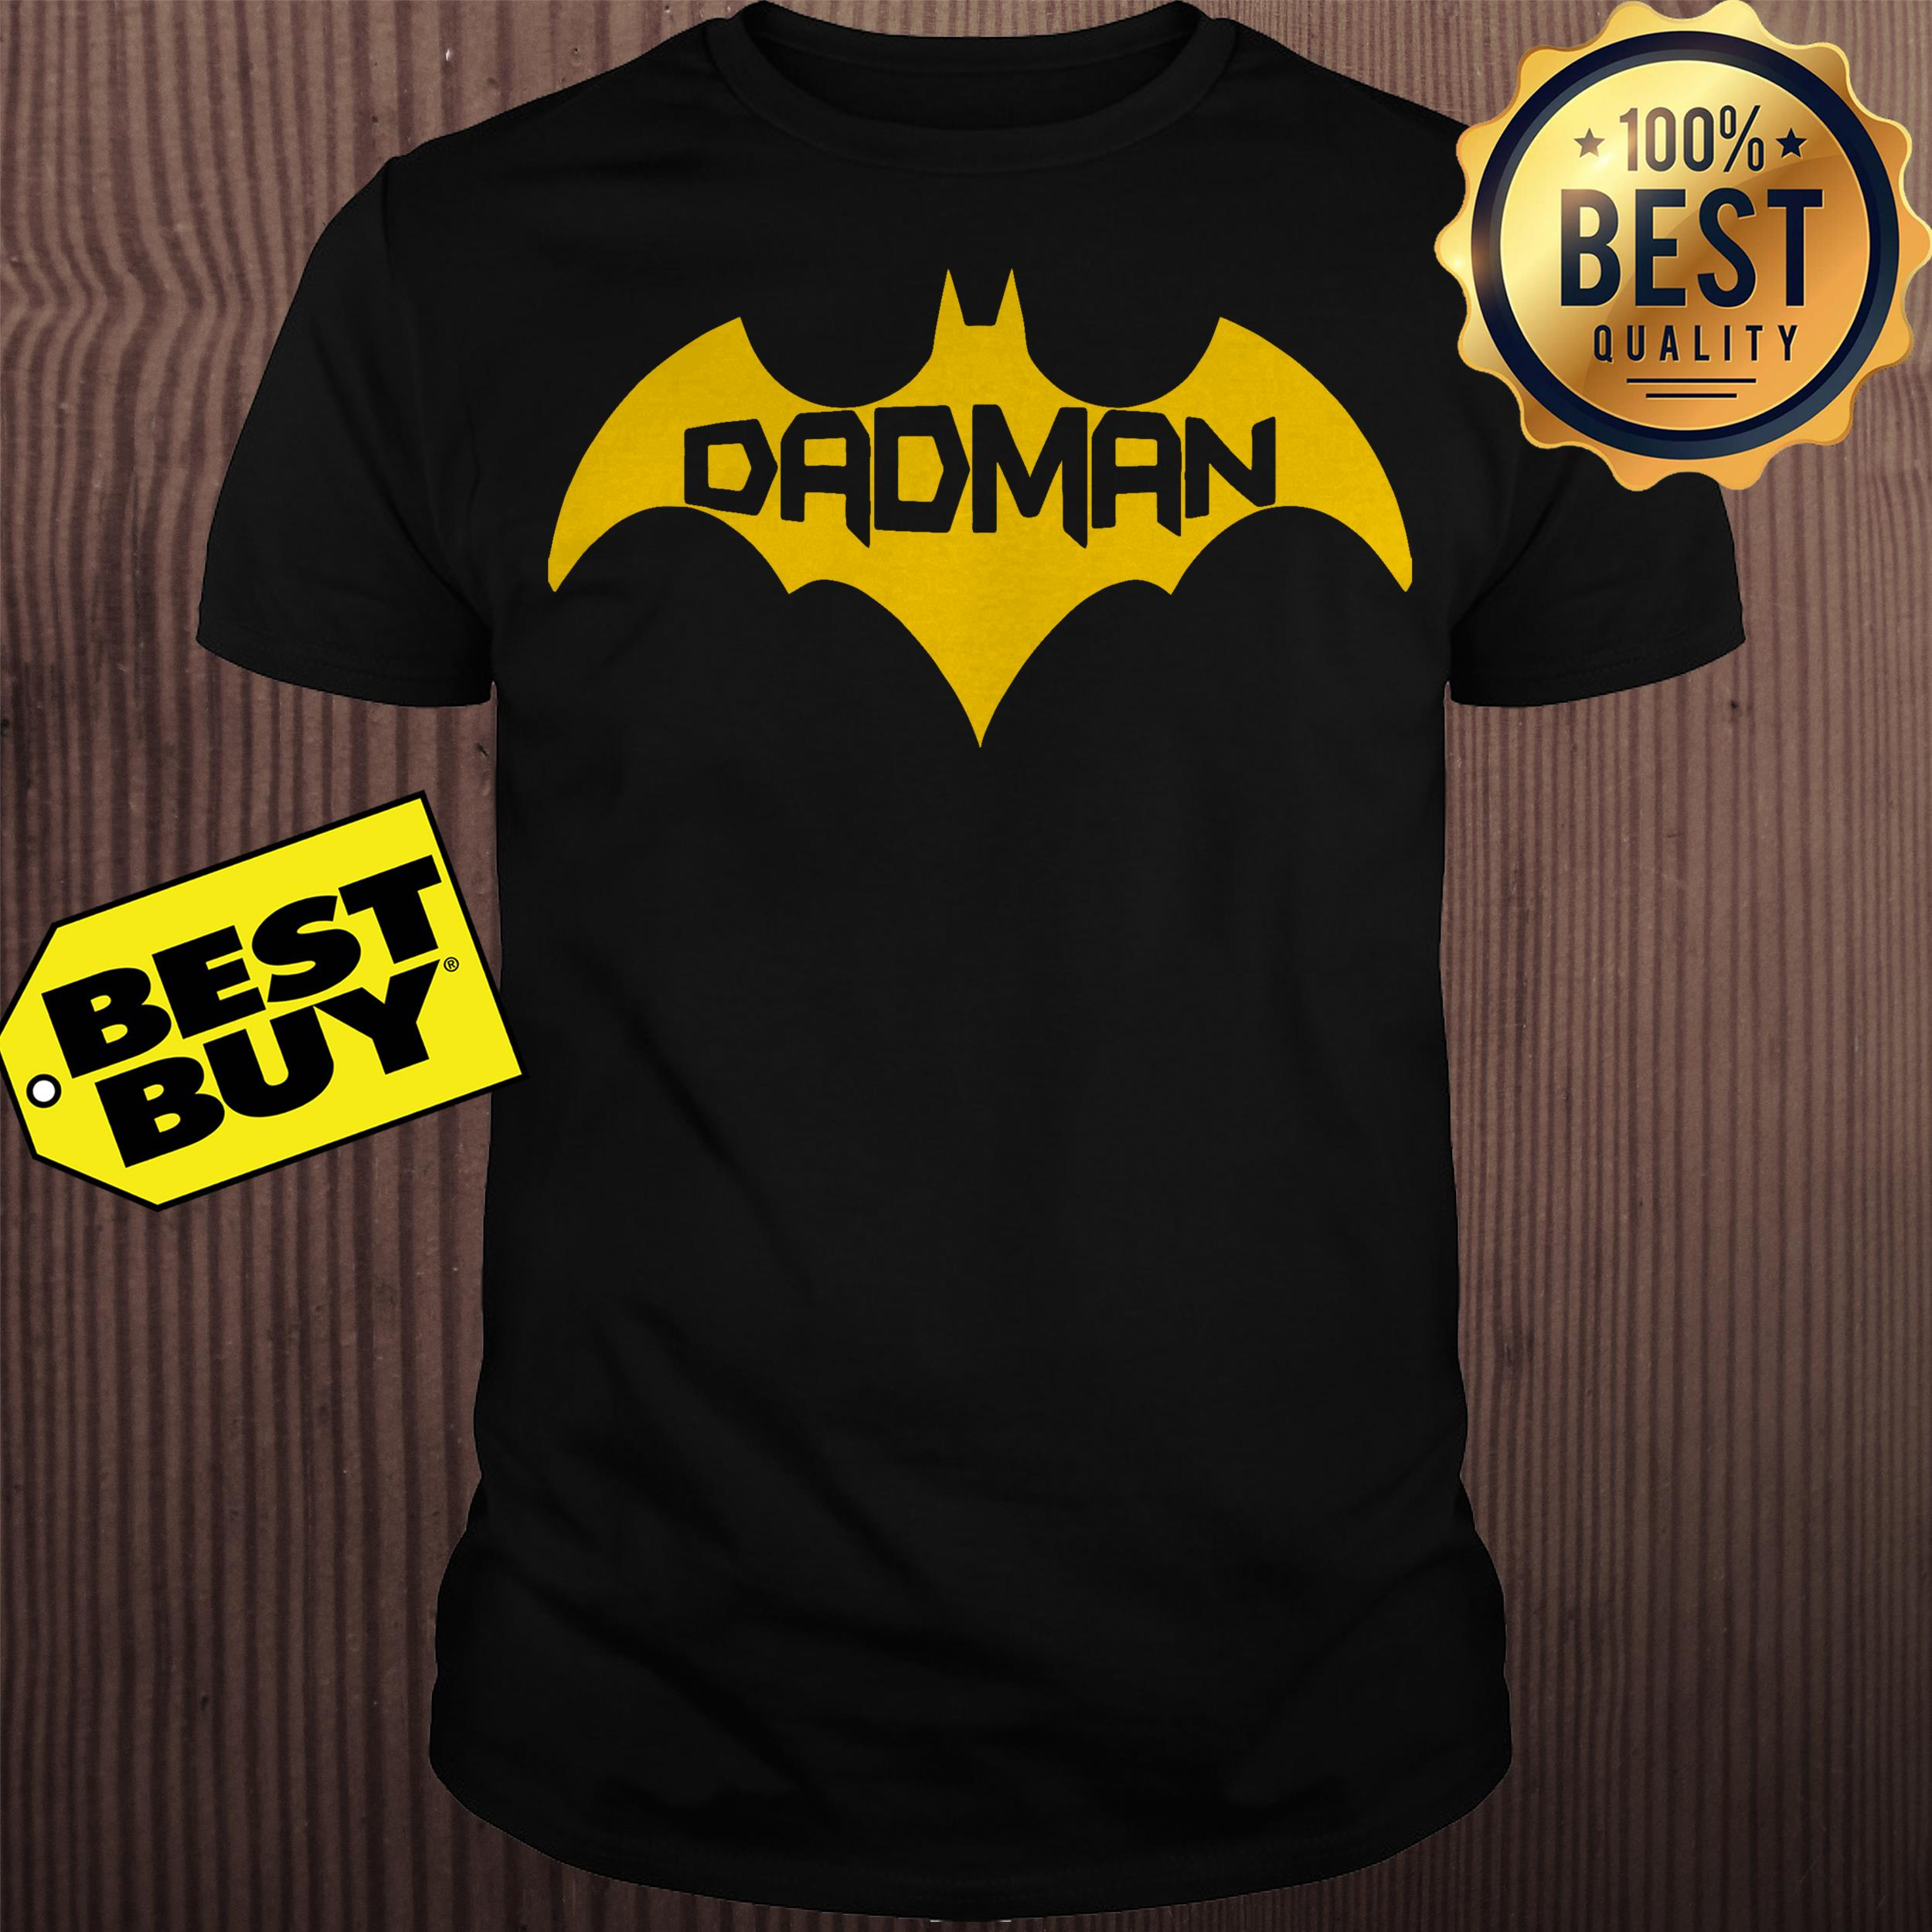 Batman day superhero shirt